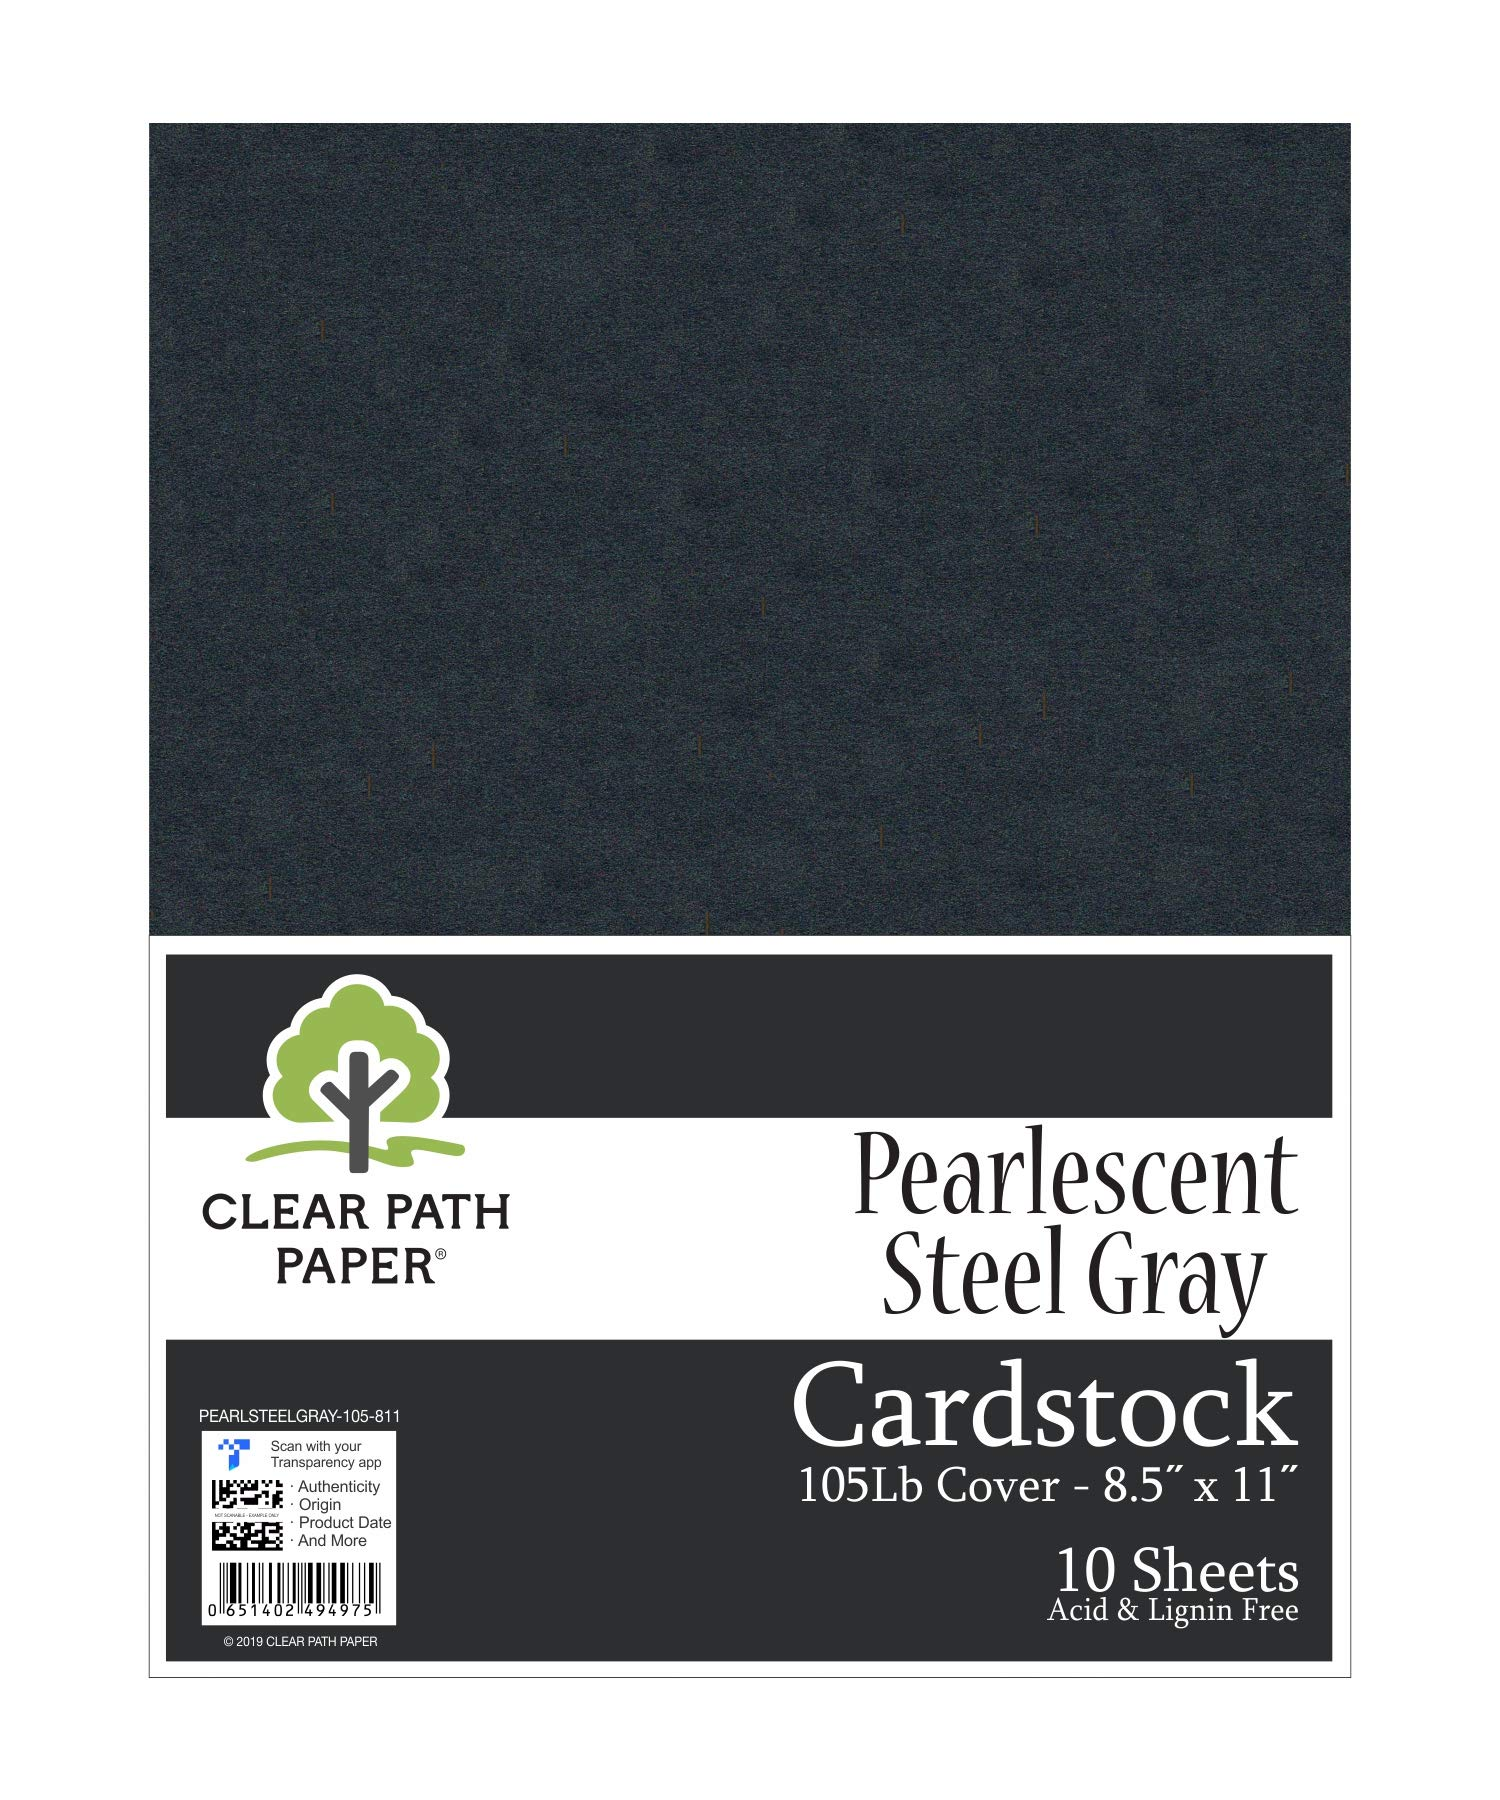 Pearl Shimmer Metallic Steel Gray Cardstock - 8.5 x 11 inch - 105Lb Cover - 10 Sheets